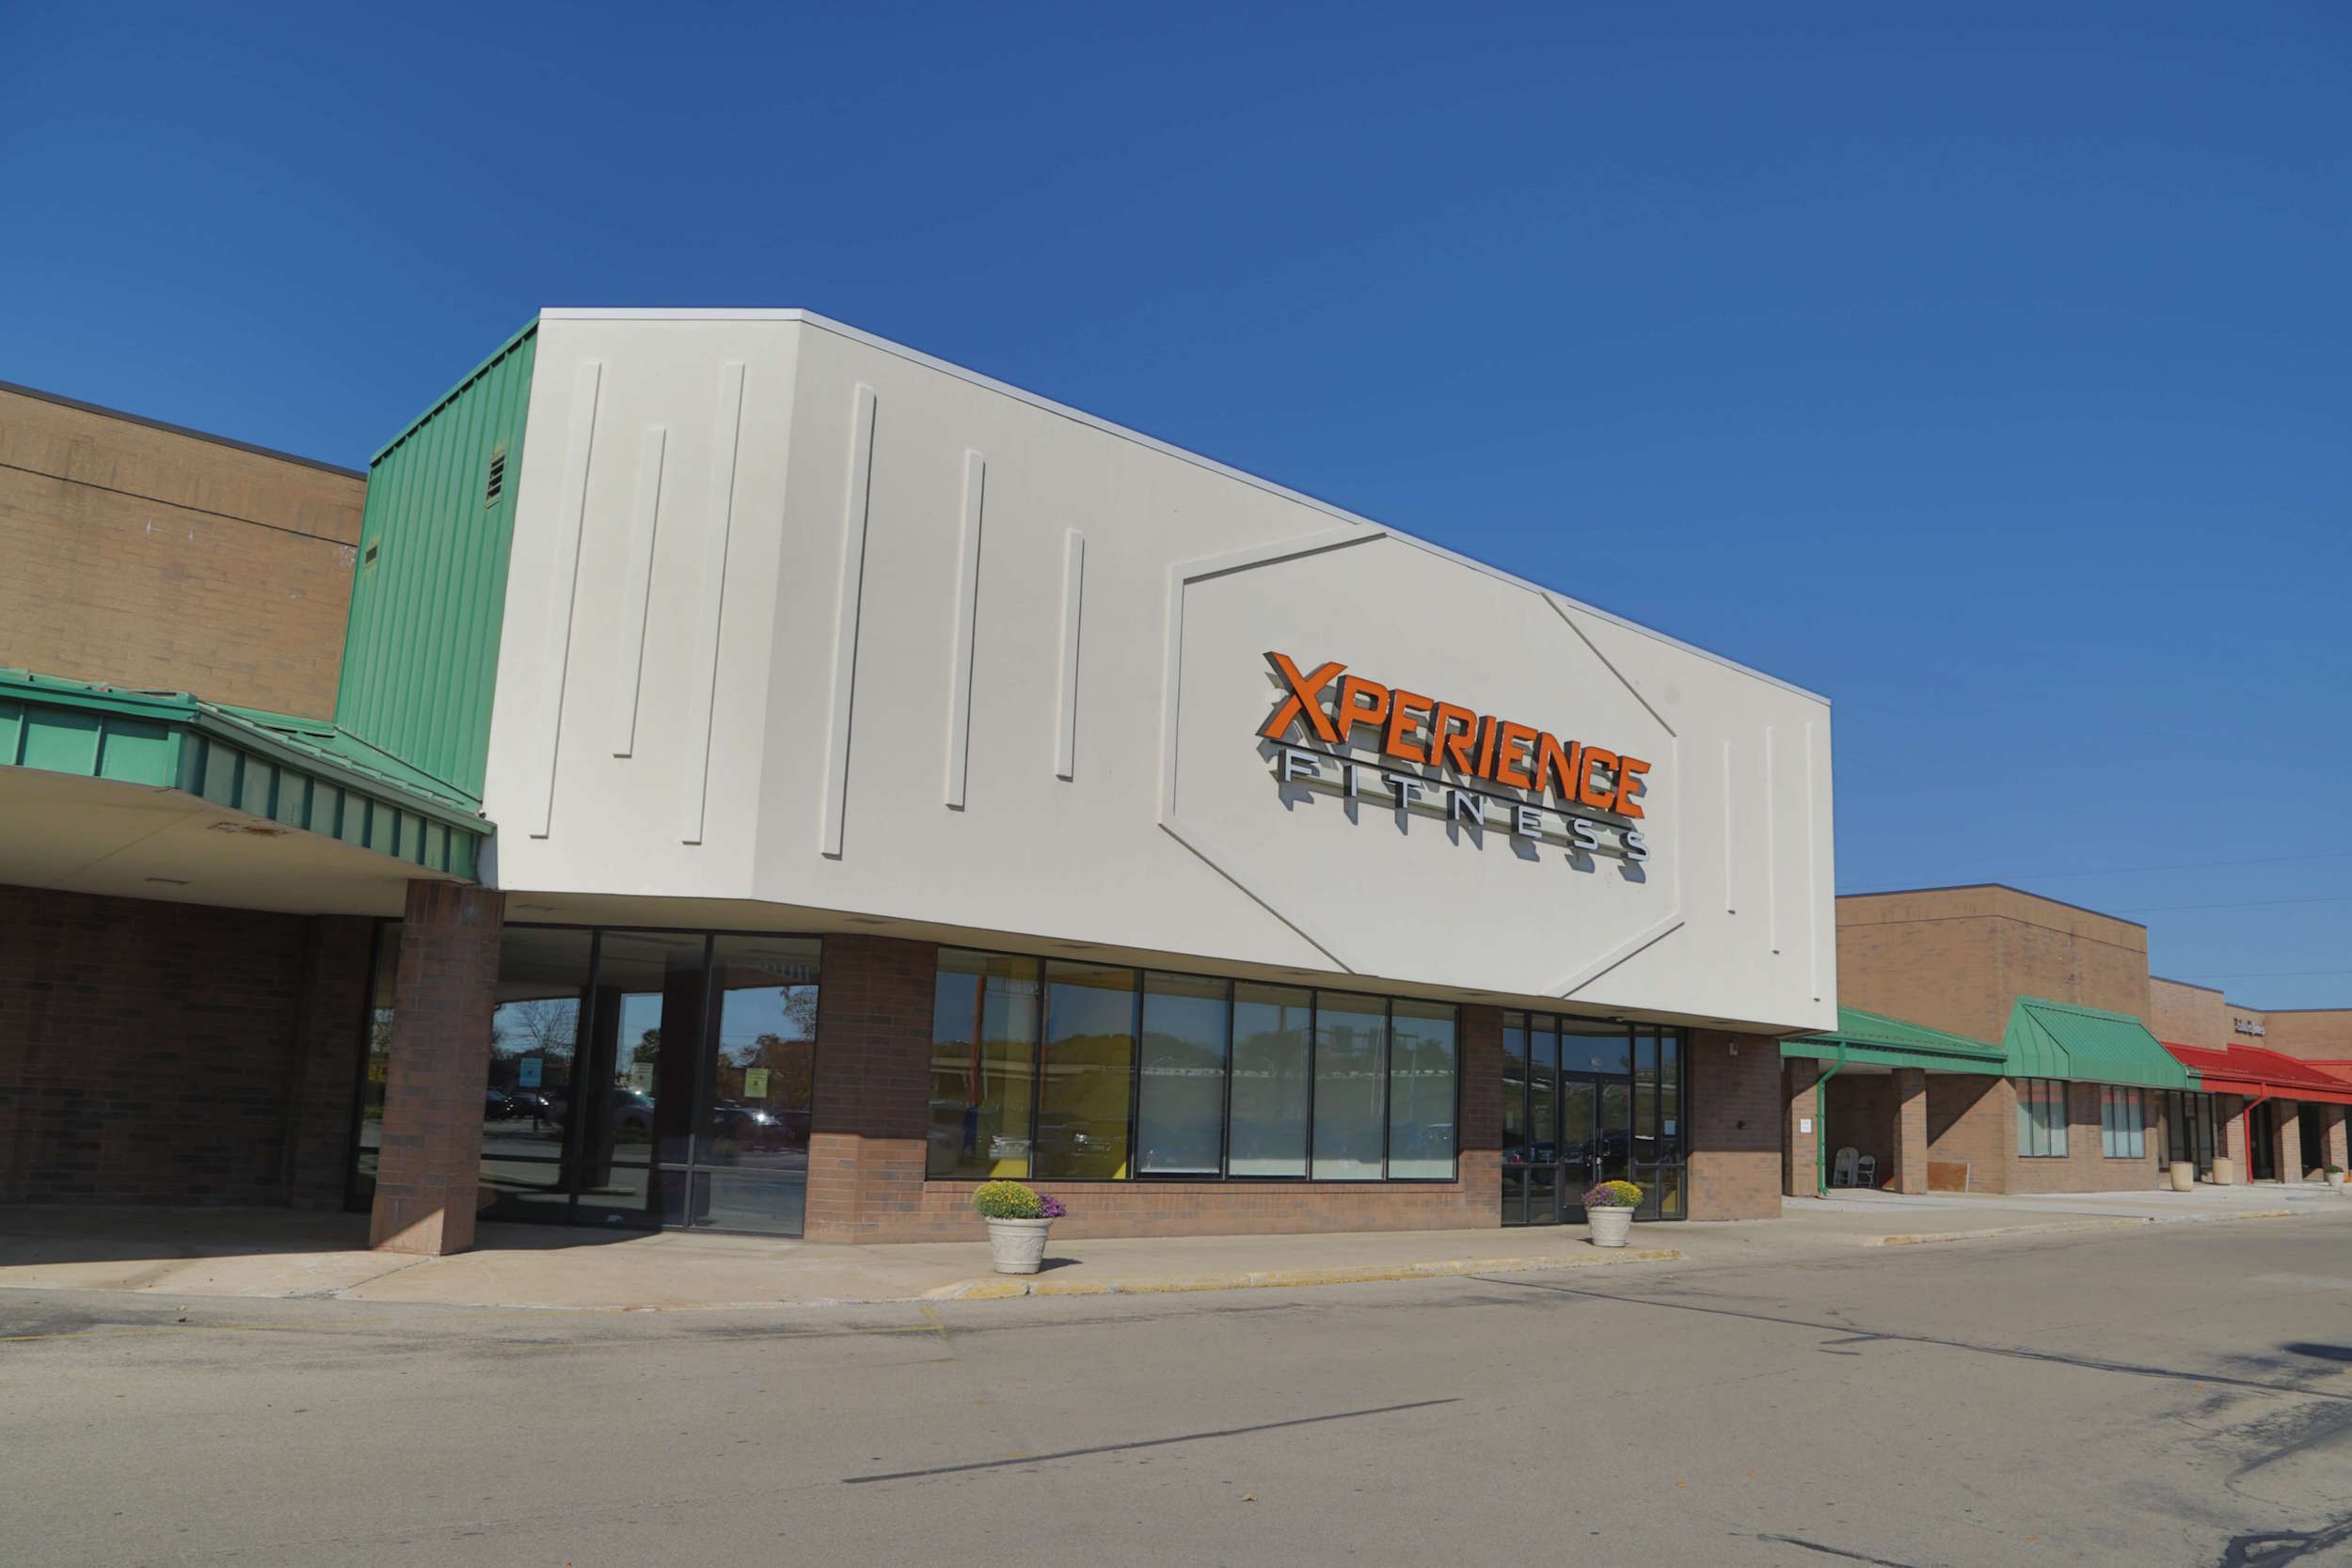 Xperience Fitness - Gym in Menasha, WI 54952